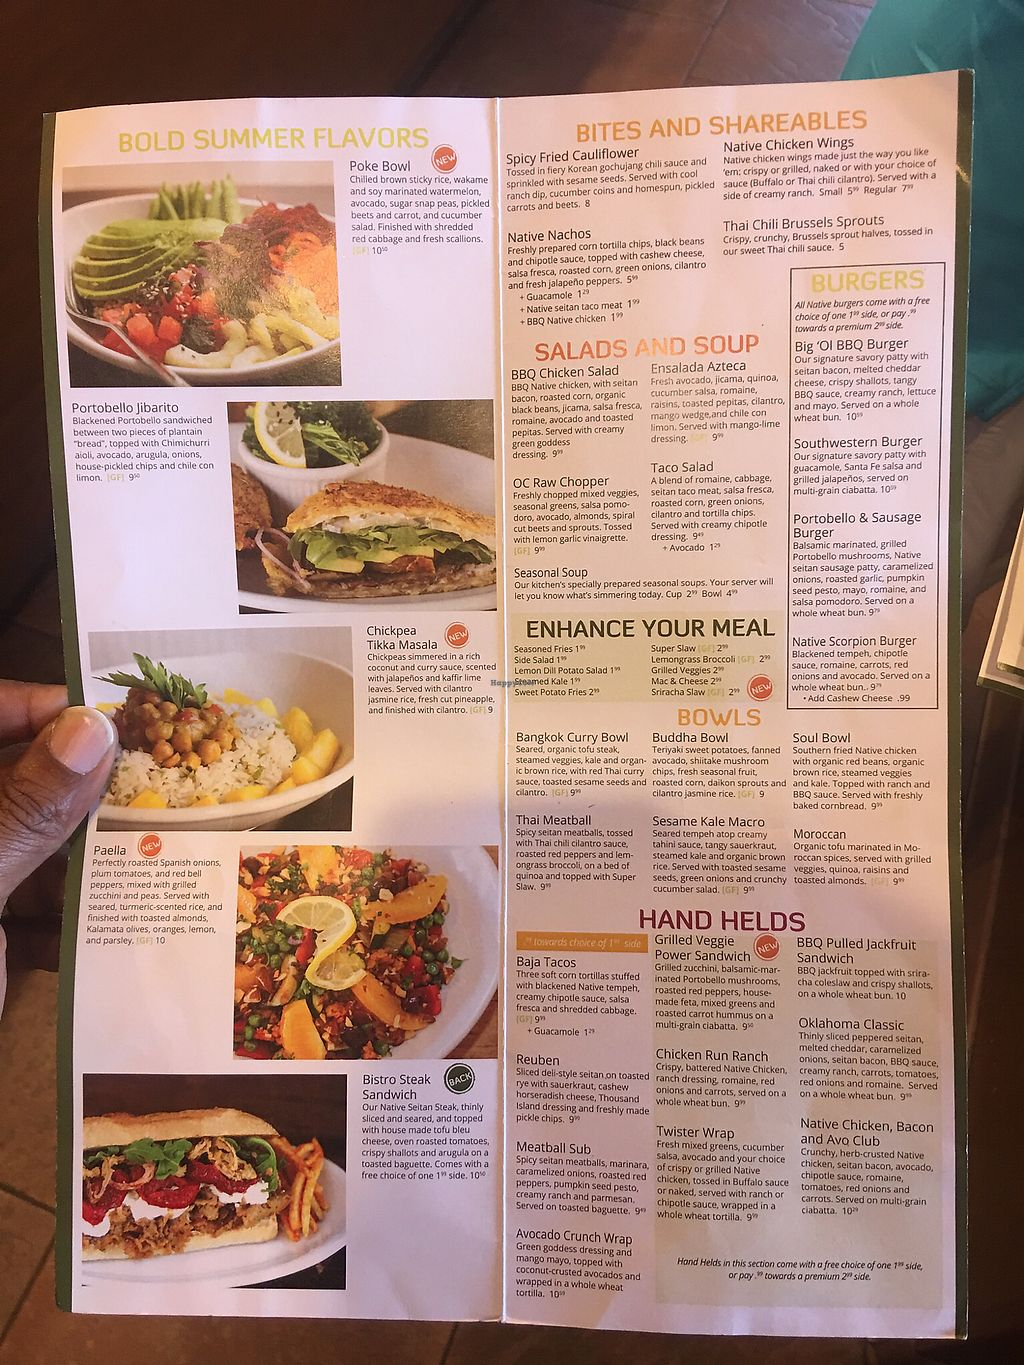 """Photo of Native Foods - Point Loma  by <a href=""""/members/profile/St_whit"""">St_whit</a> <br/>Menu <br/> September 23, 2017  - <a href='/contact/abuse/image/46998/307620'>Report</a>"""